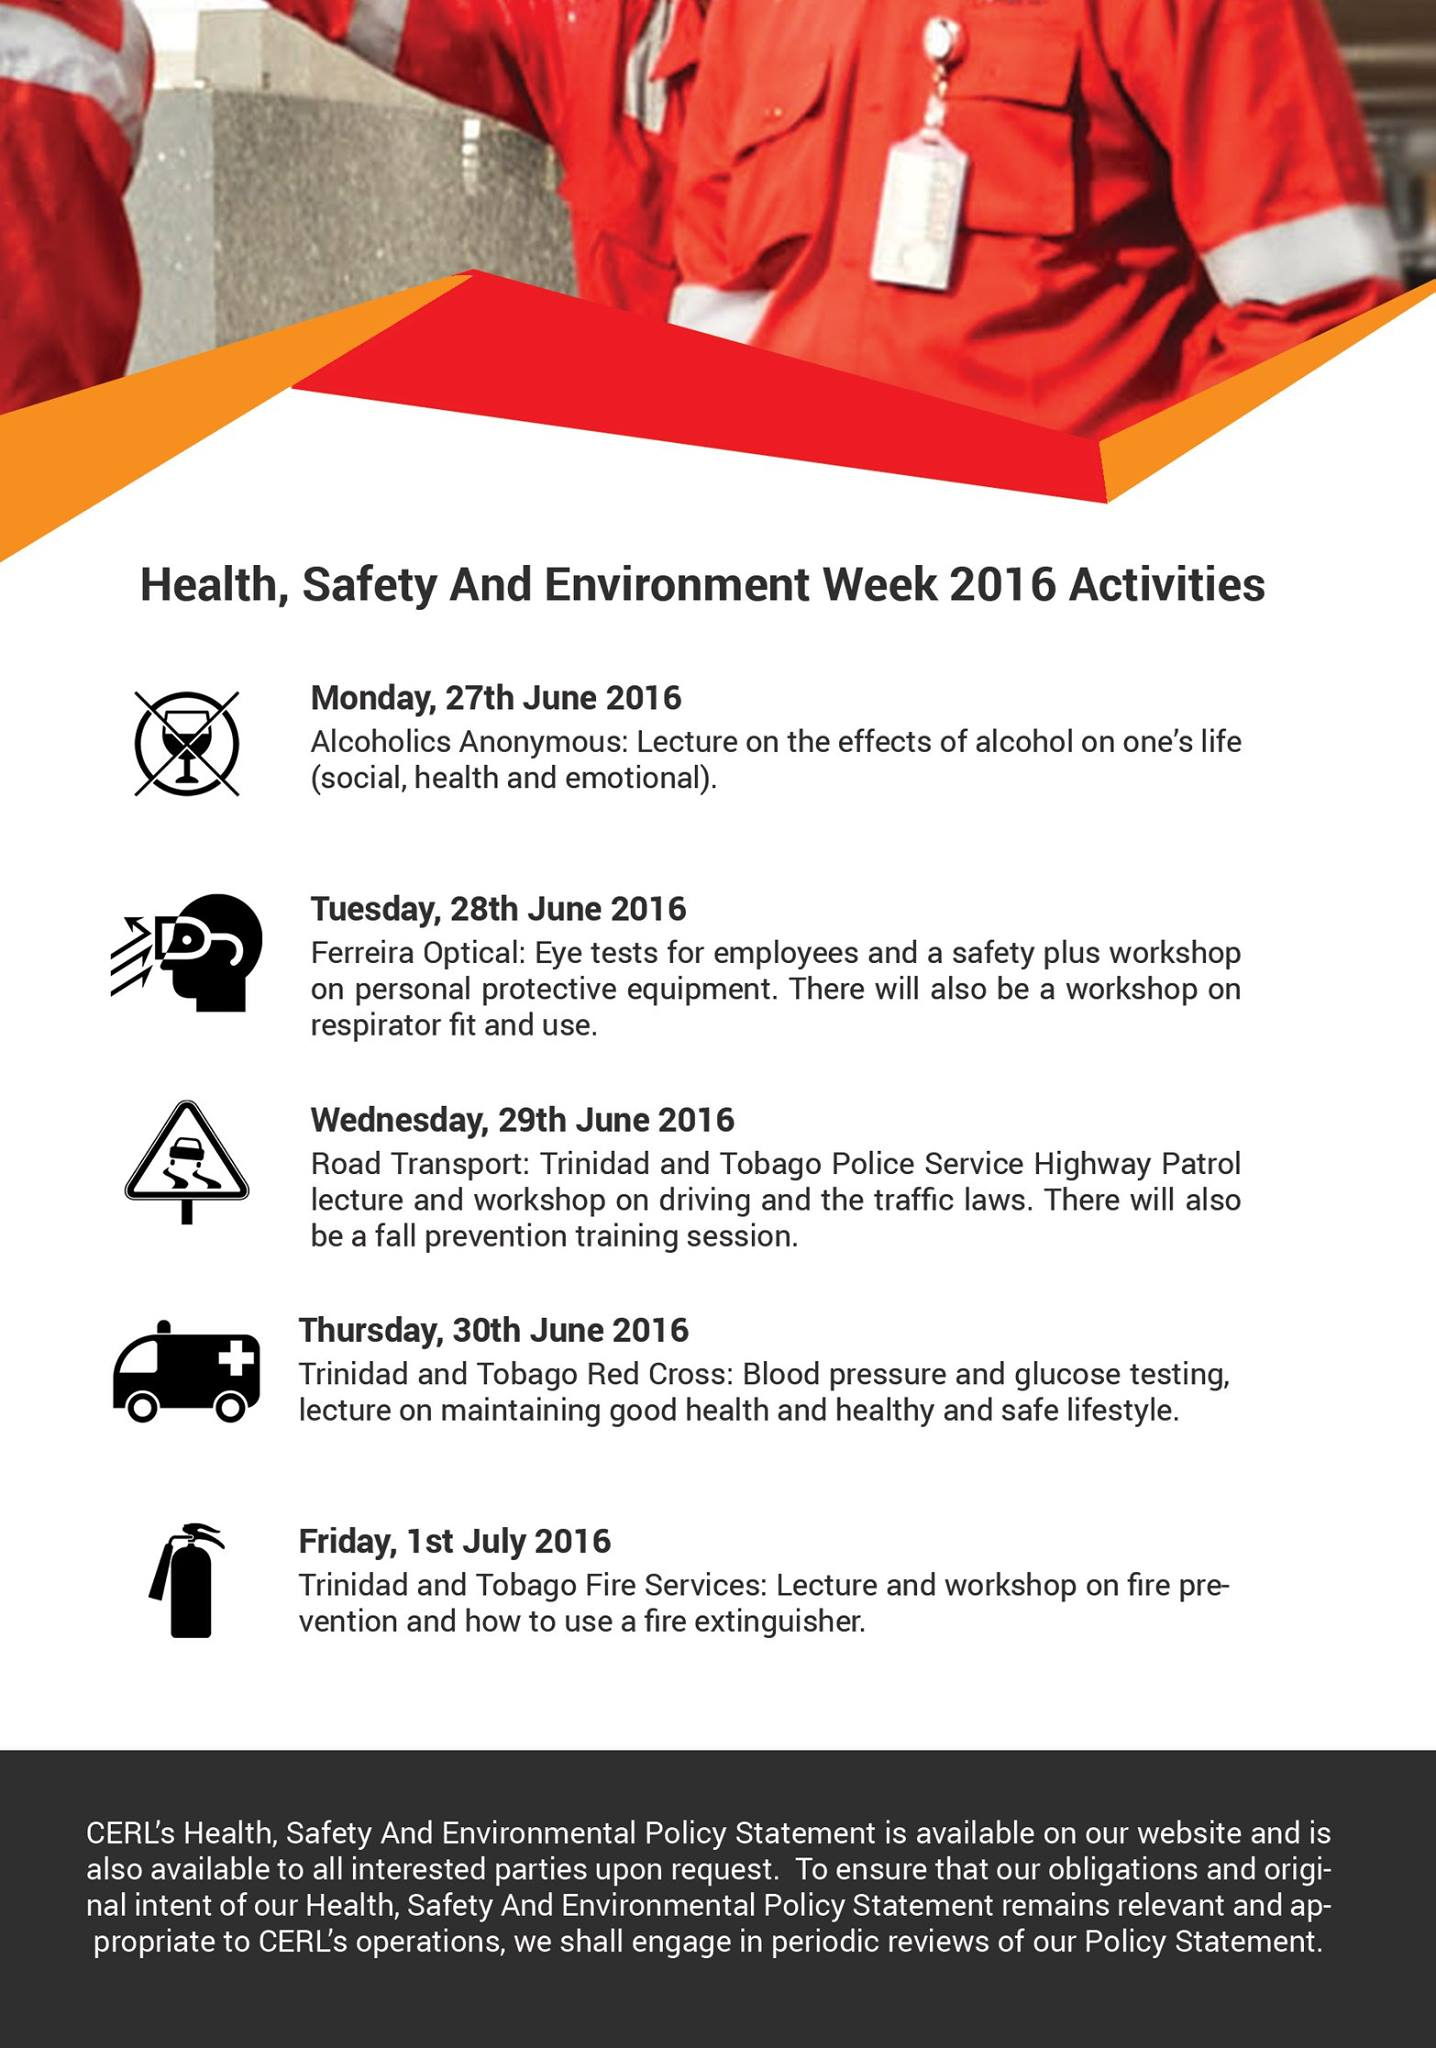 Health, Safety And Environment Week 2016 Activities